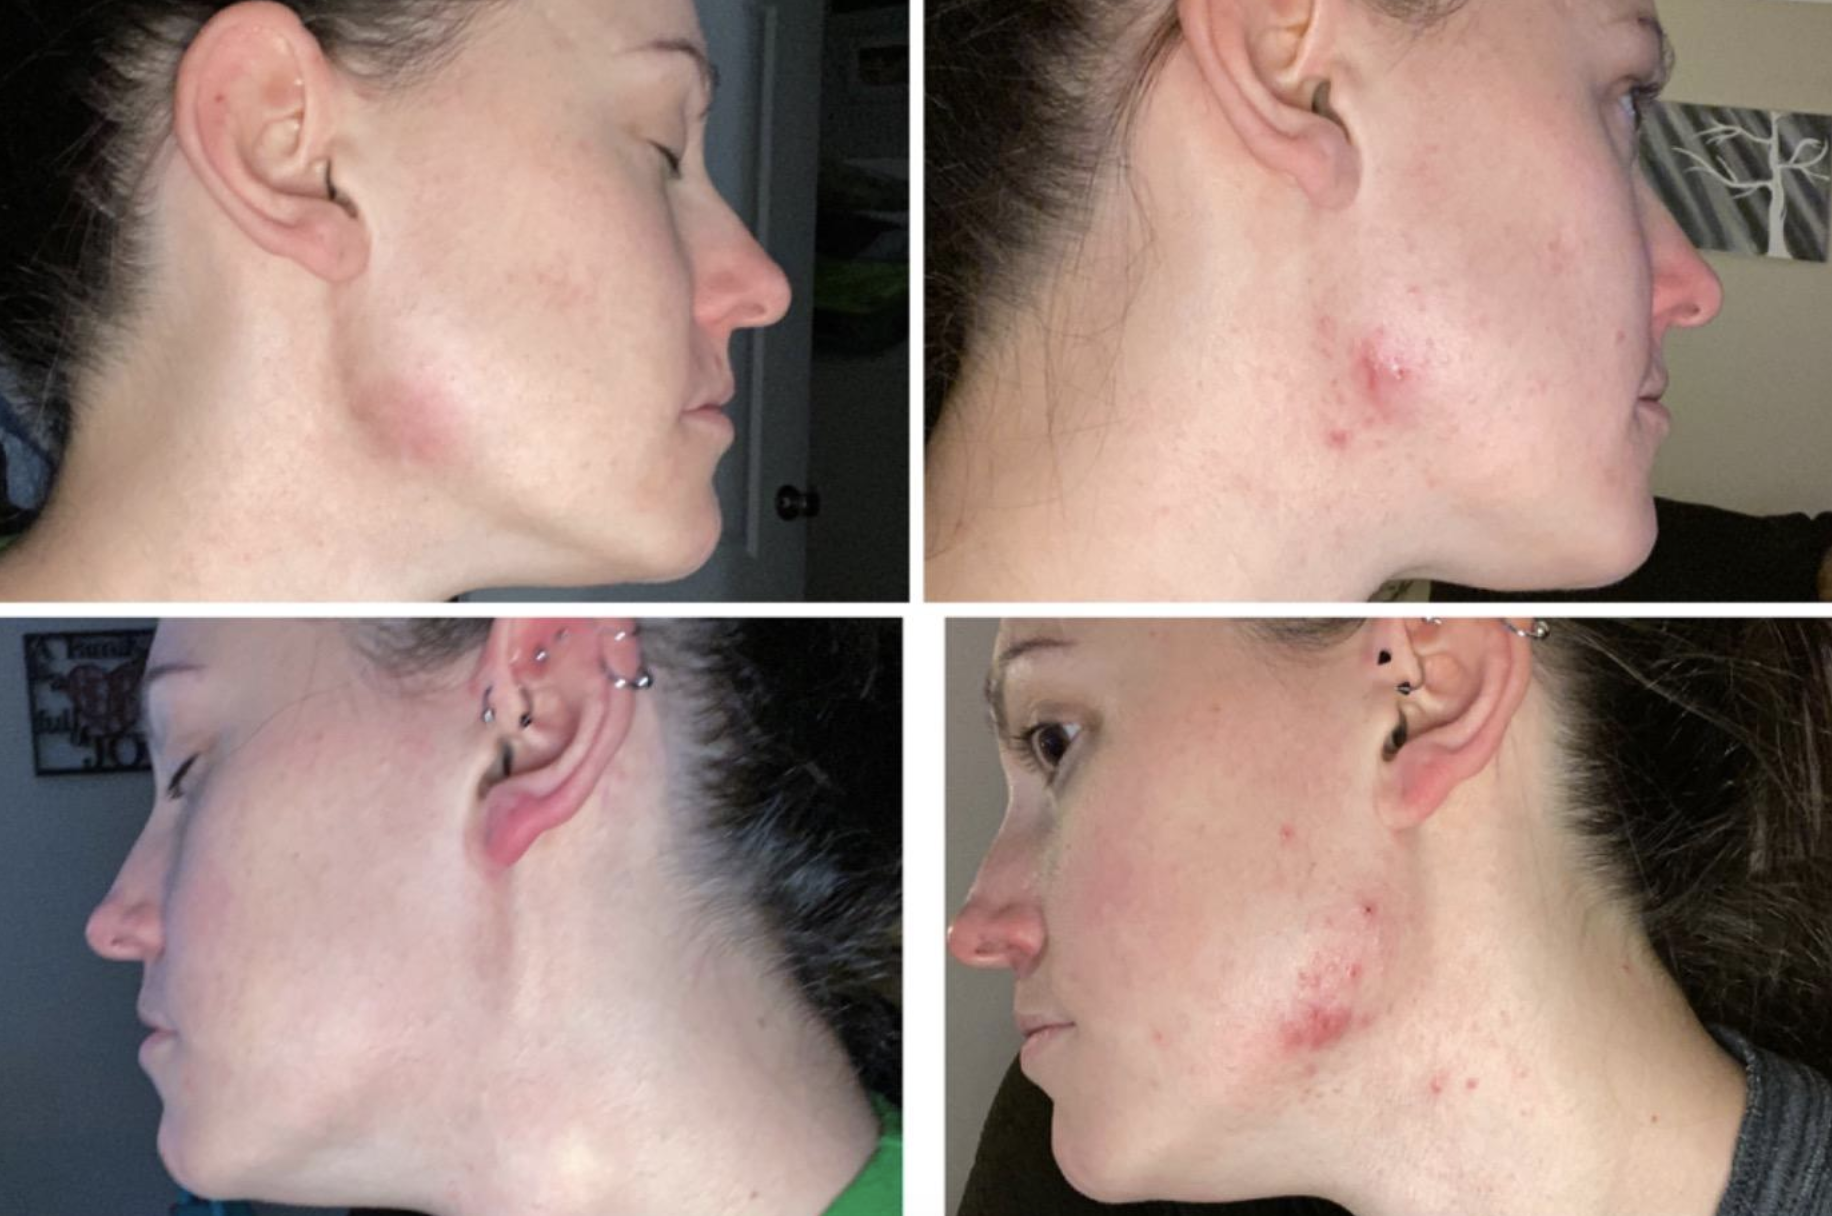 reviewer on right with visible acne and less visible acne on left